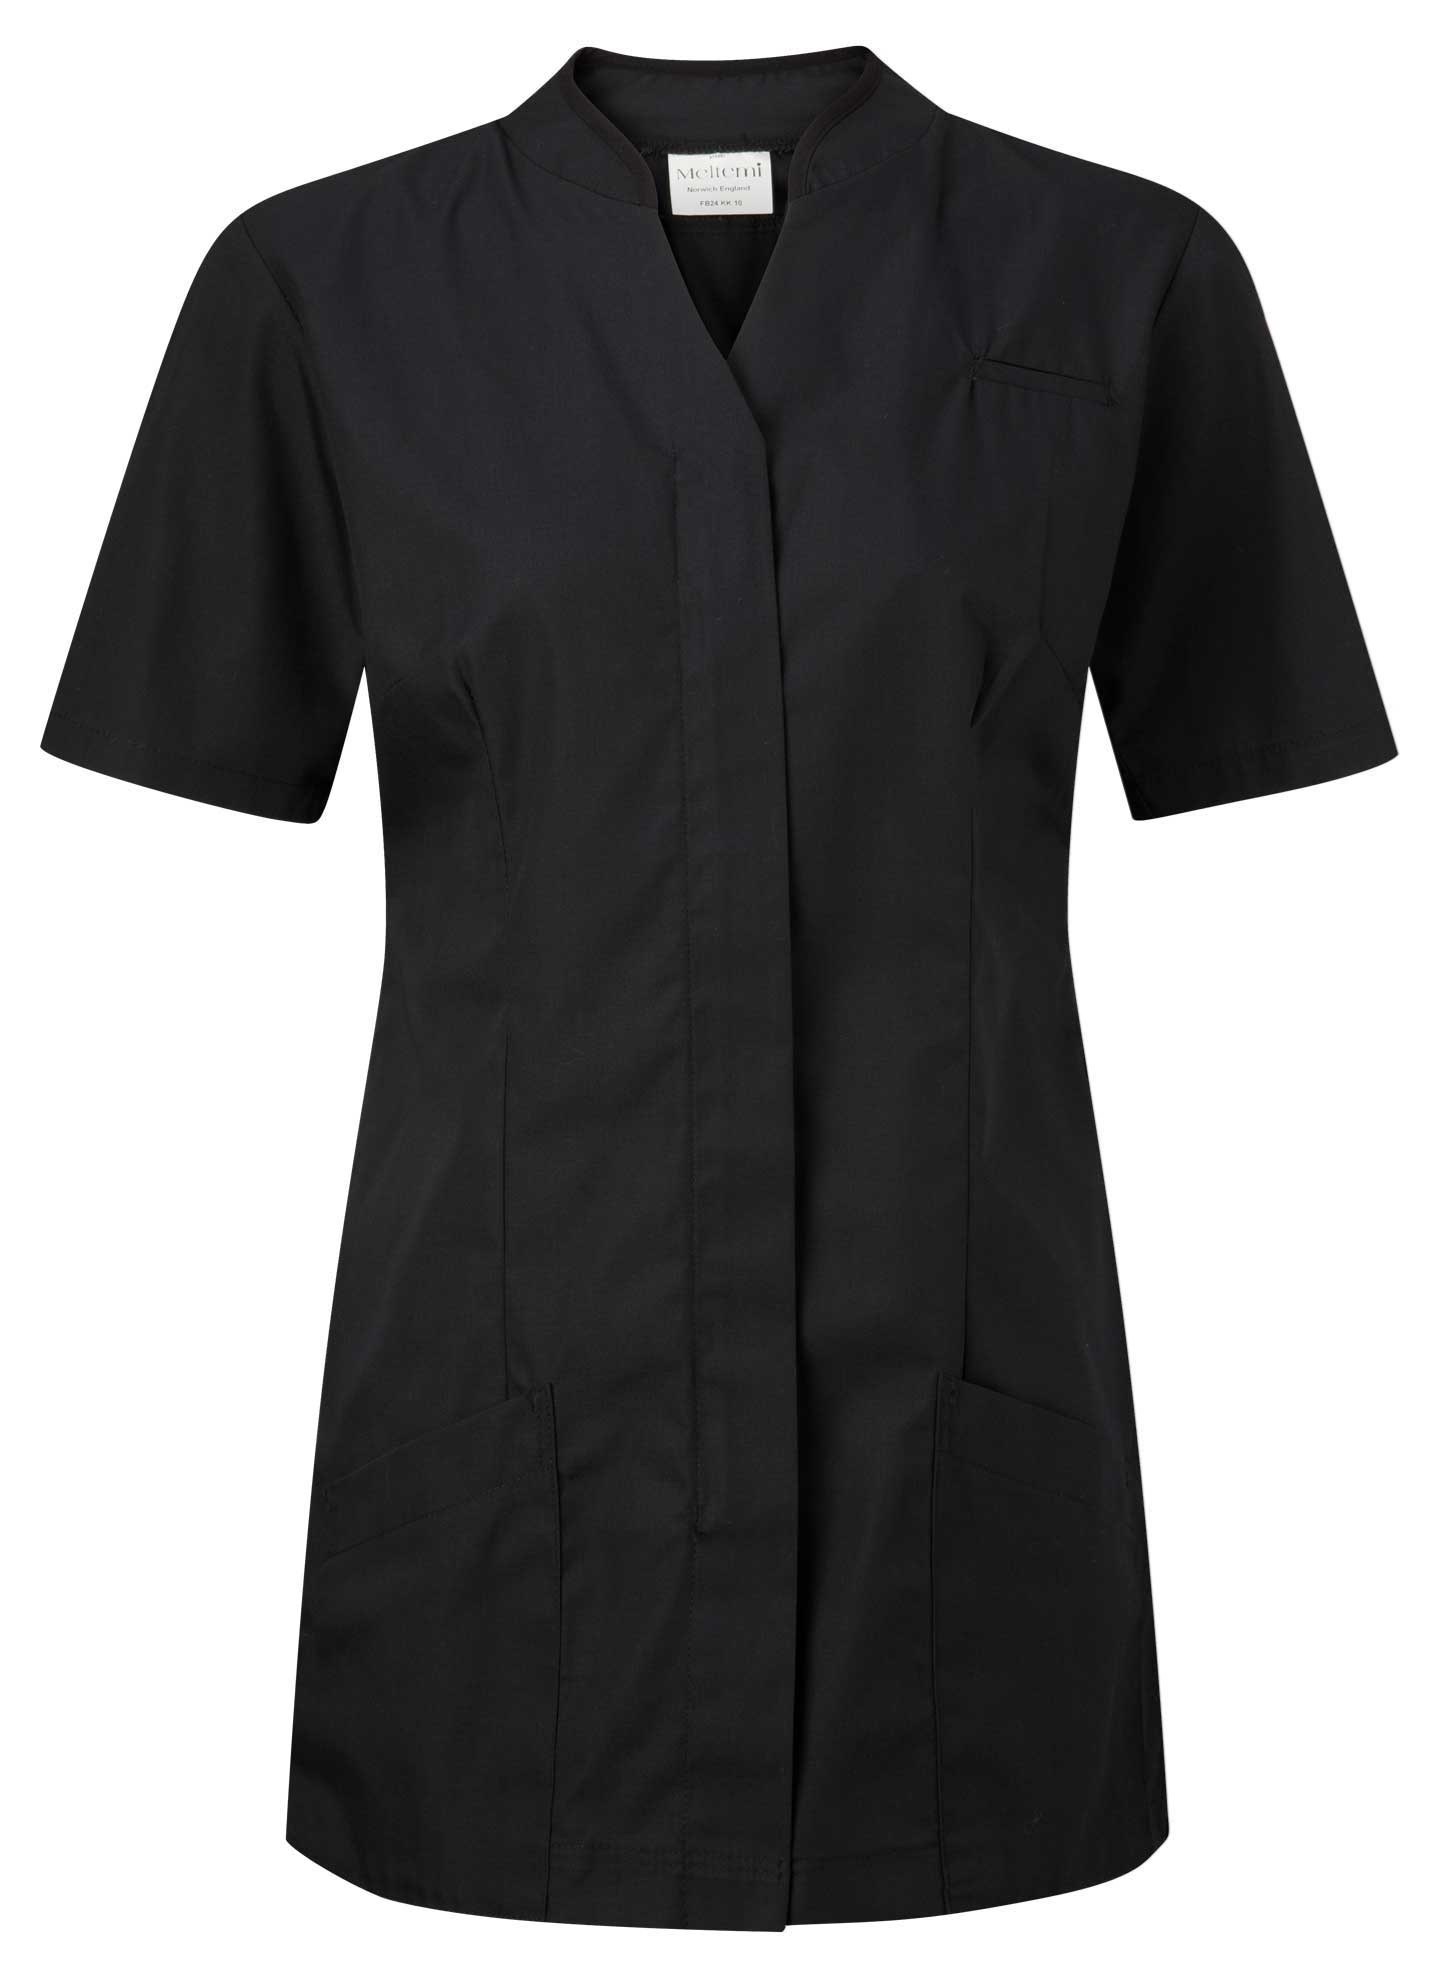 Picture of Polycotton Top - Black